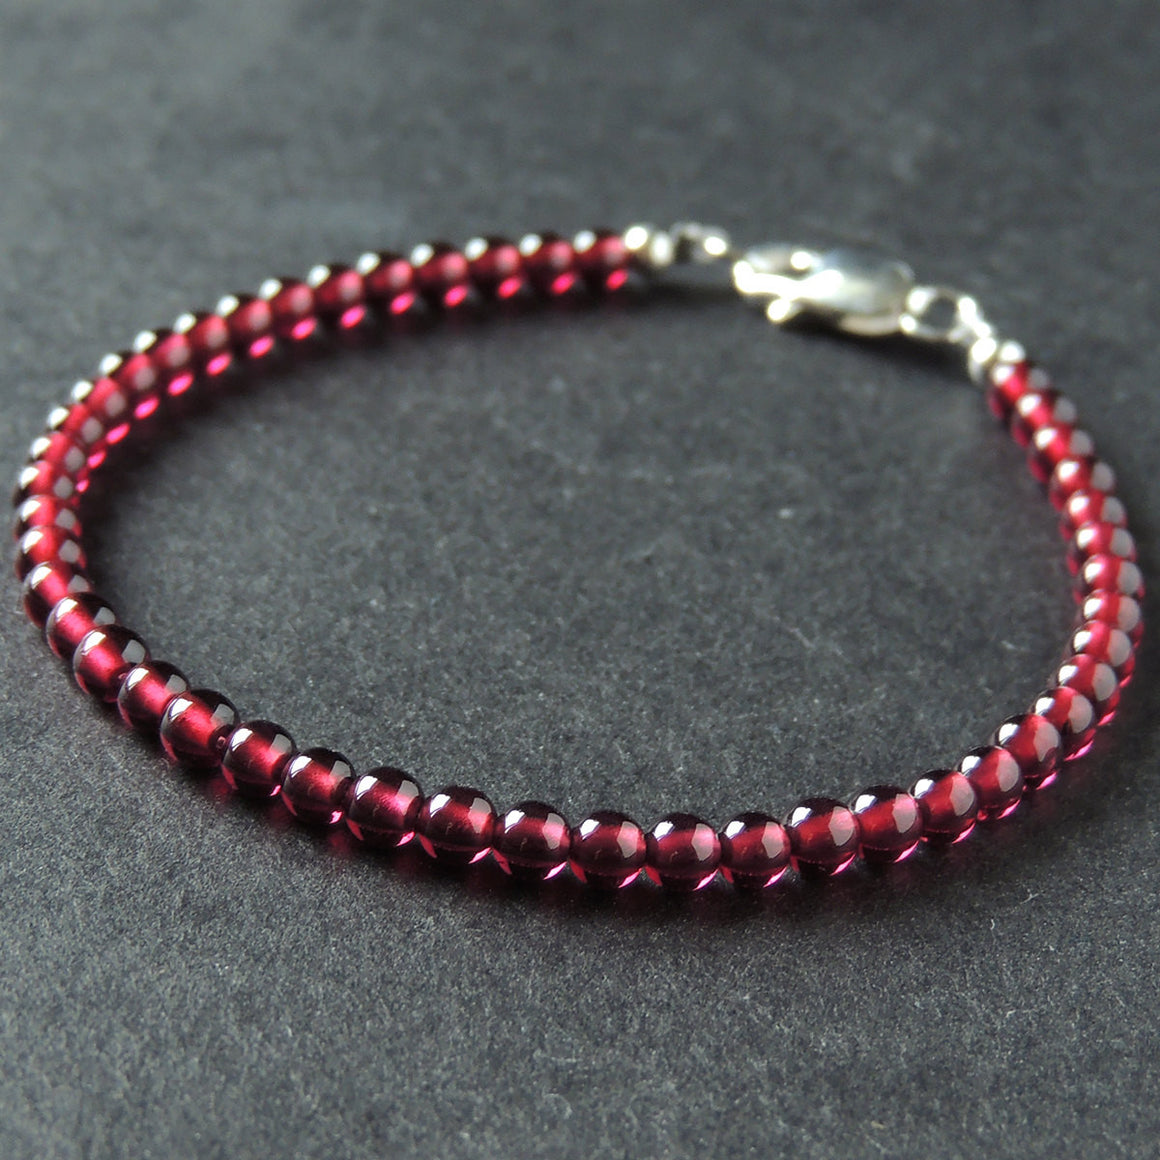 3.5mm Natural AAAA Garnet Healing Gemstone Bracelet with S925 Sterling Silver Beads & Clasp - Handmade by Gem & Silver BR888